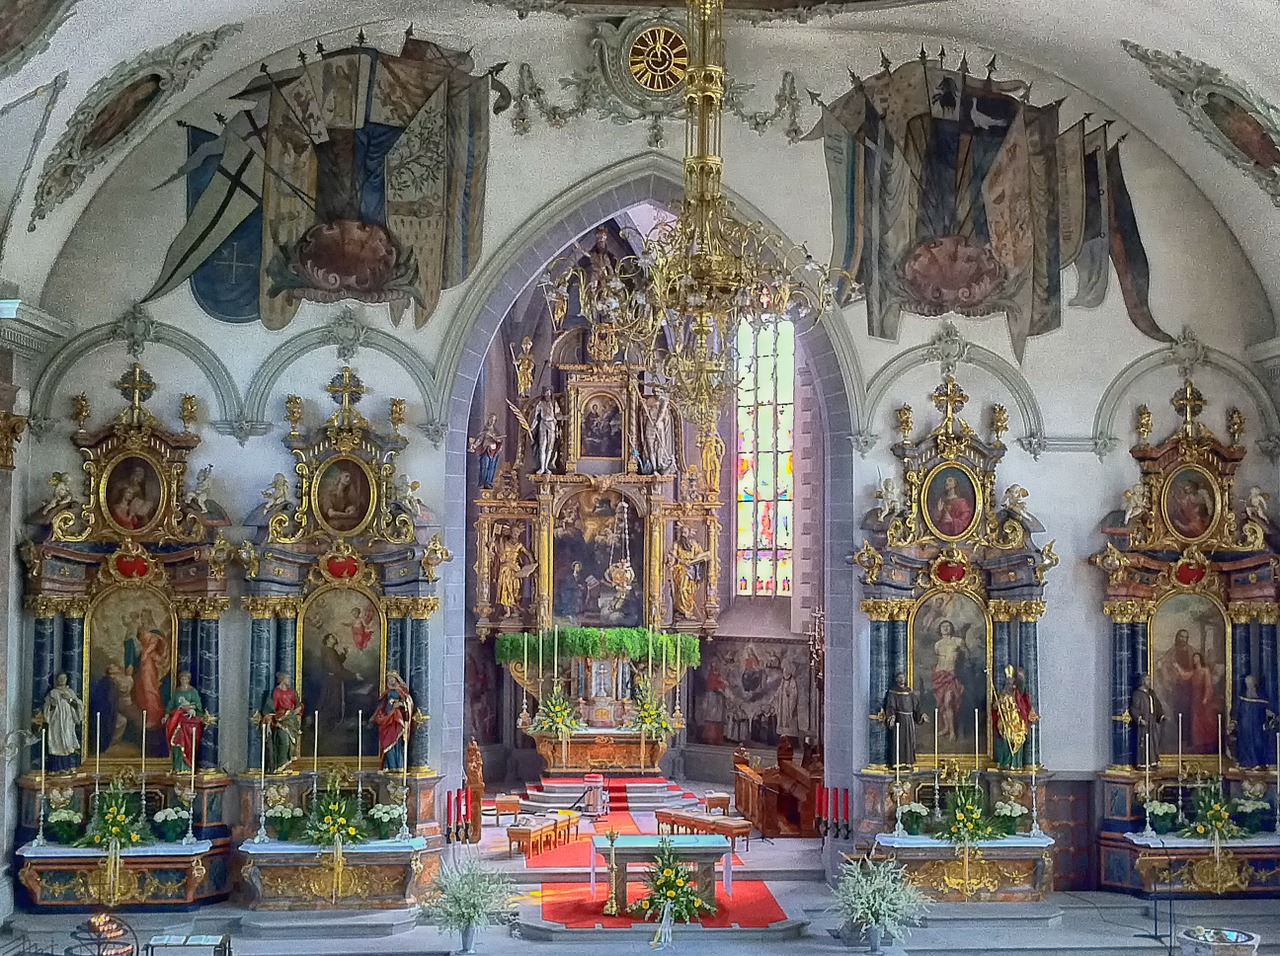 st martin,appenzell,switzerland,church,building,interior,inside,architecture,ornate,sculptures,paintings,art,artwork,hdr,free pictures, free photos, free images, royalty free, free illustrations, public domain